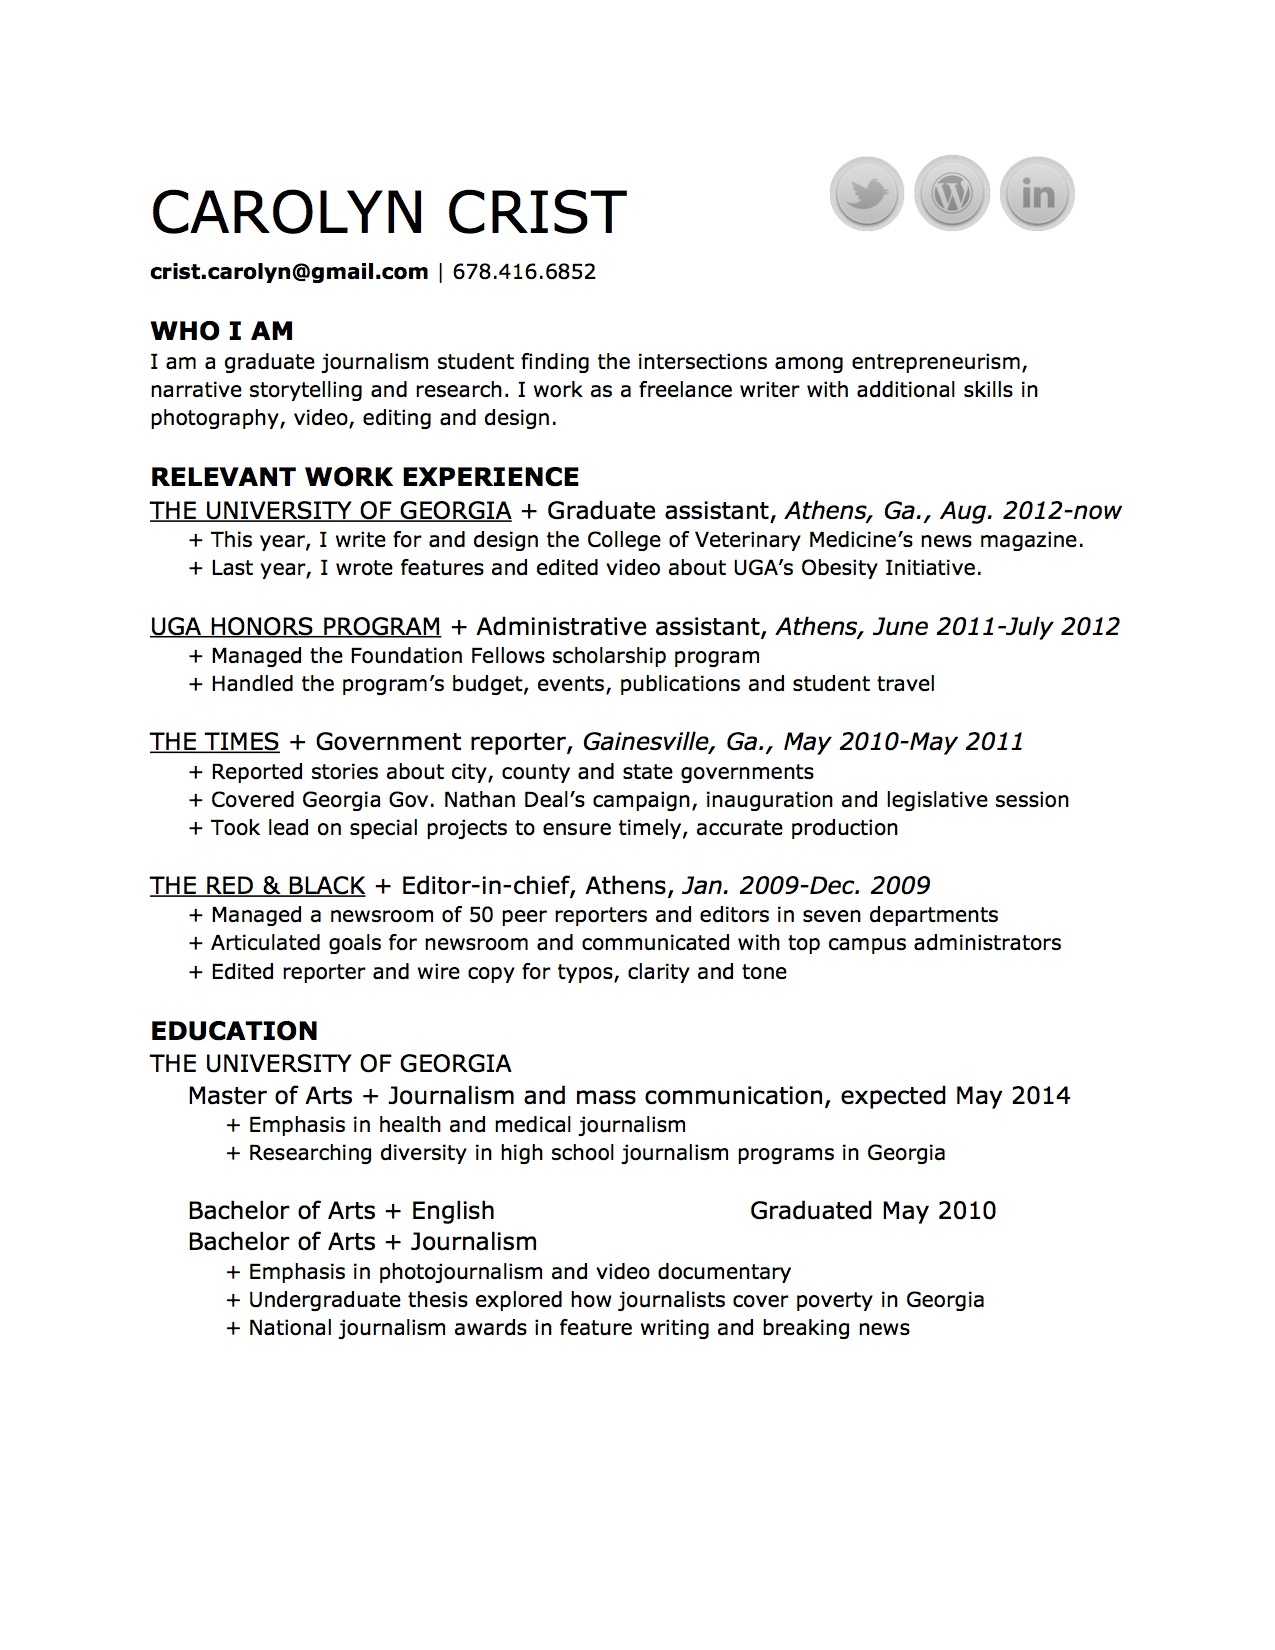 Résumé & Press – Carolyn Crist